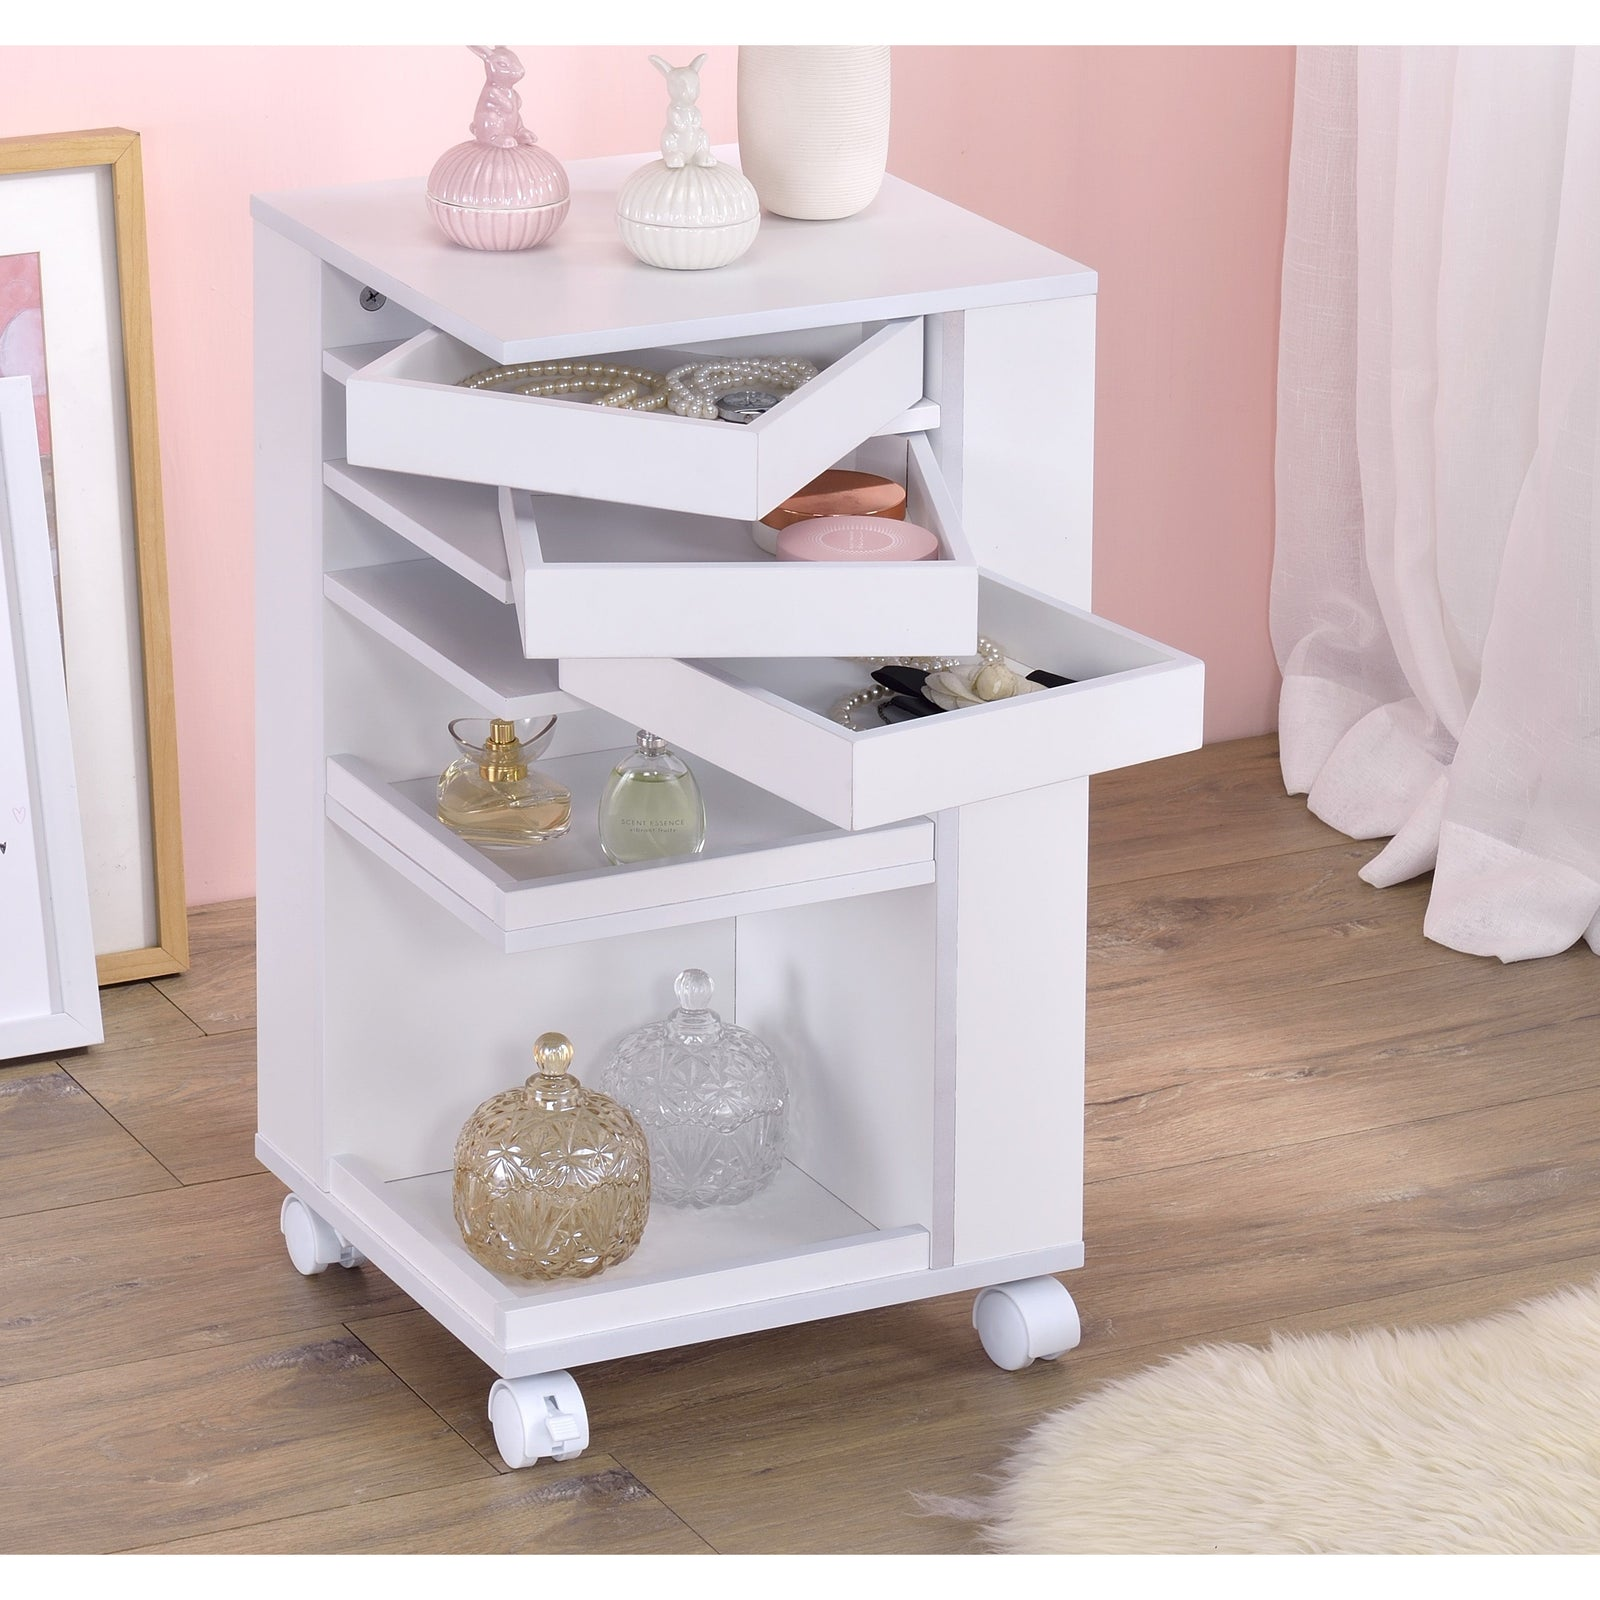 Gray Nariah Storage Cart With Casters Wheels BH97218 BH97217